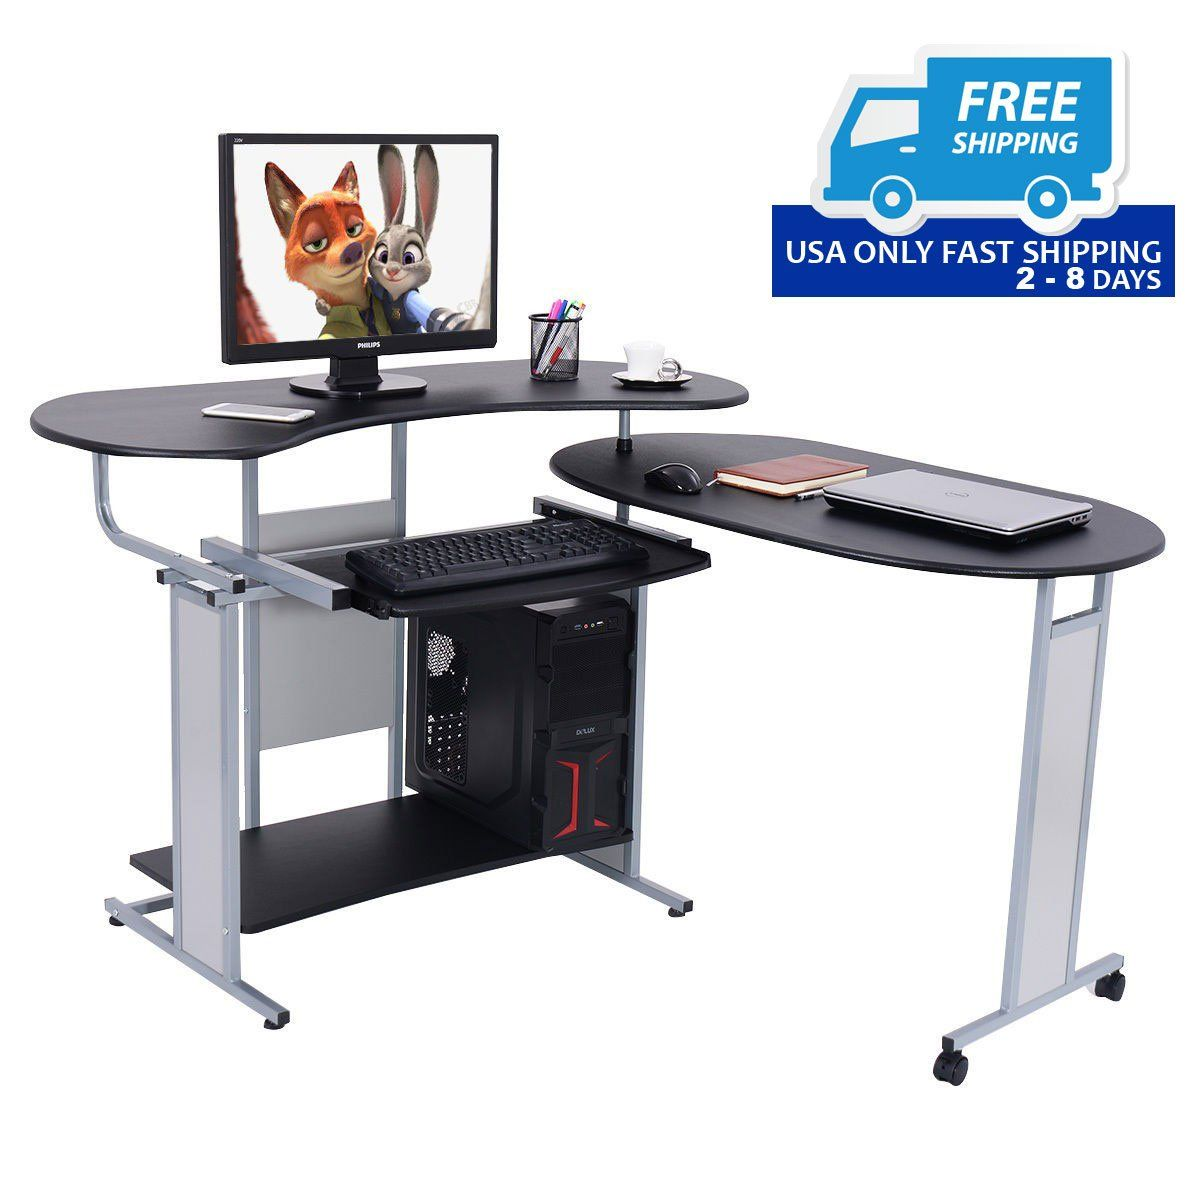 Expandable L-Shaped Computer Corner Workstation | Corner workstation, Wood computer desk, Desk